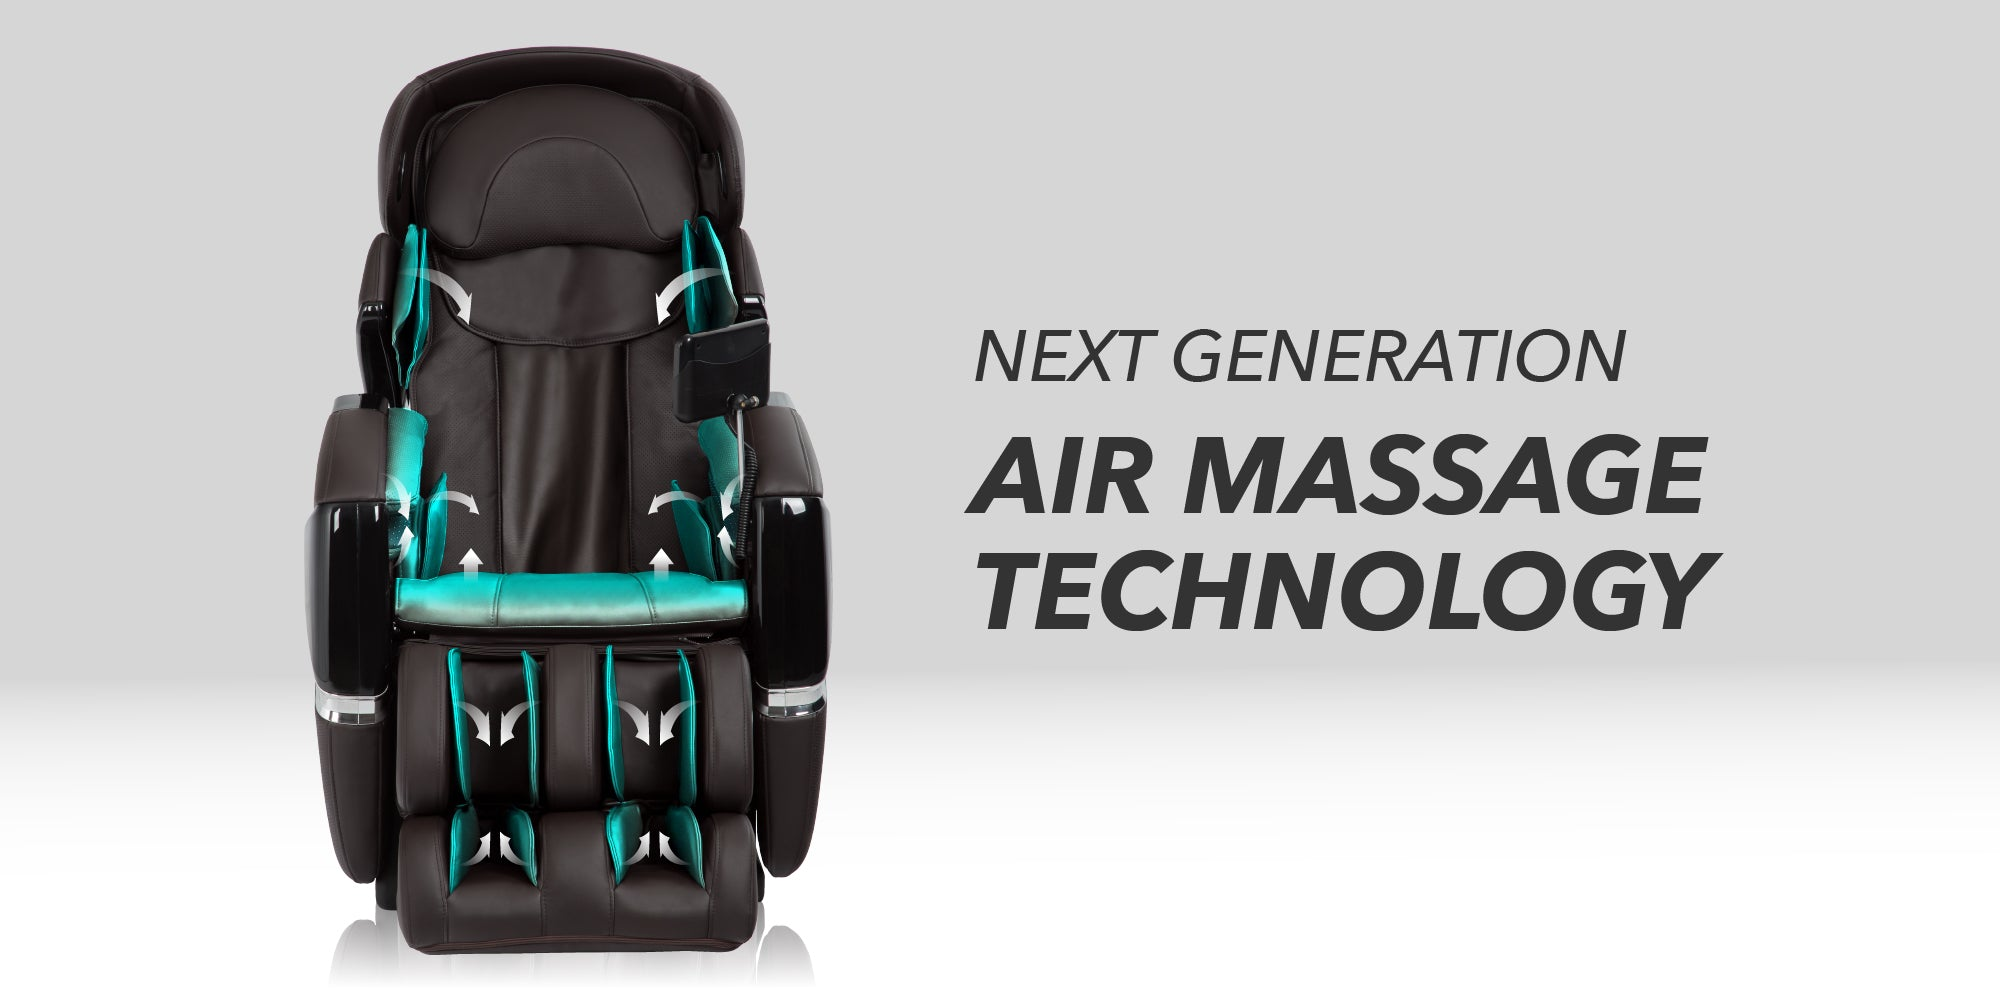 Air Massage Technology